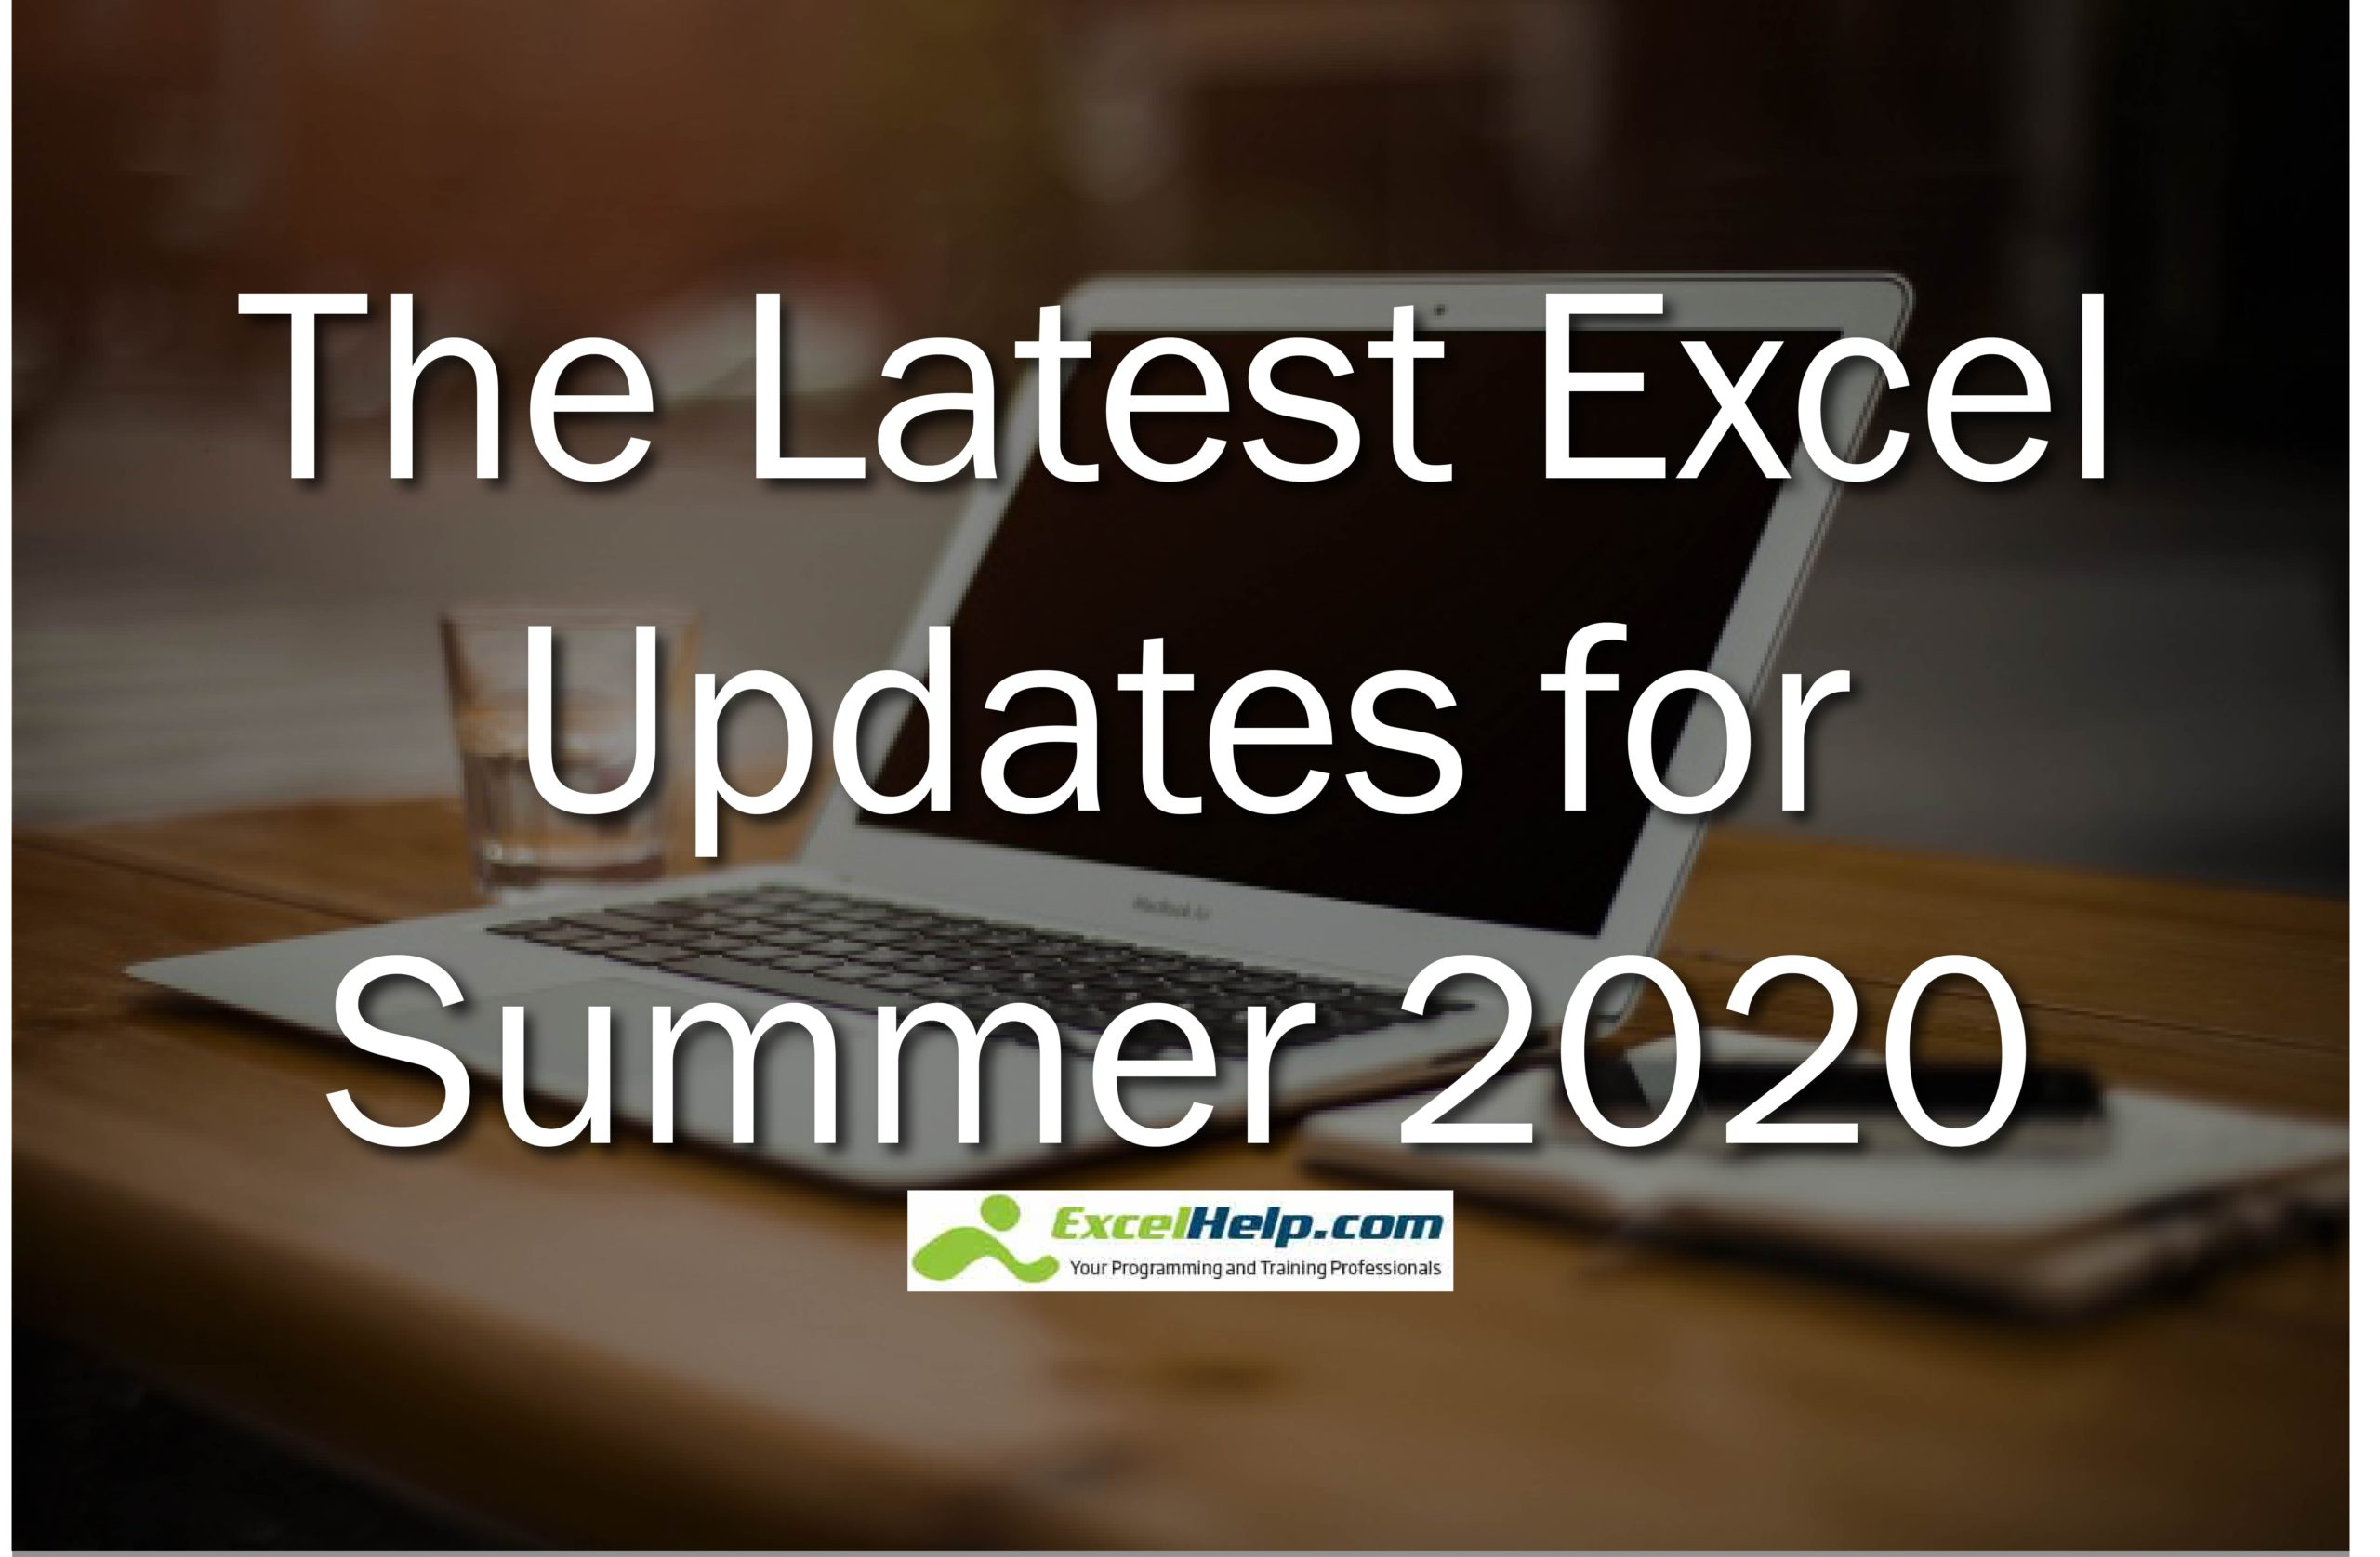 The Latest Excel Updates For Summer